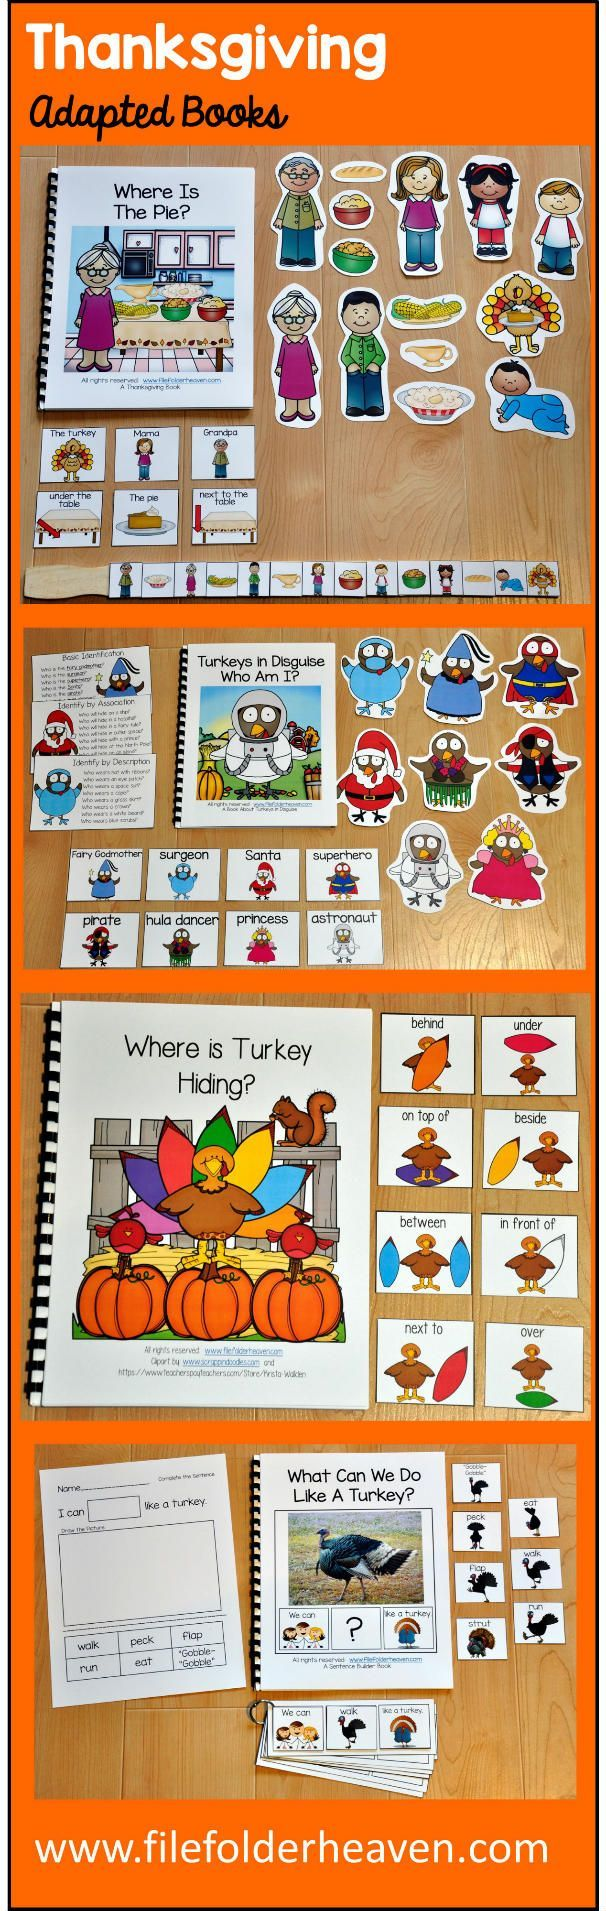 So many Thanksgiving Adapted Books, so little time! :)